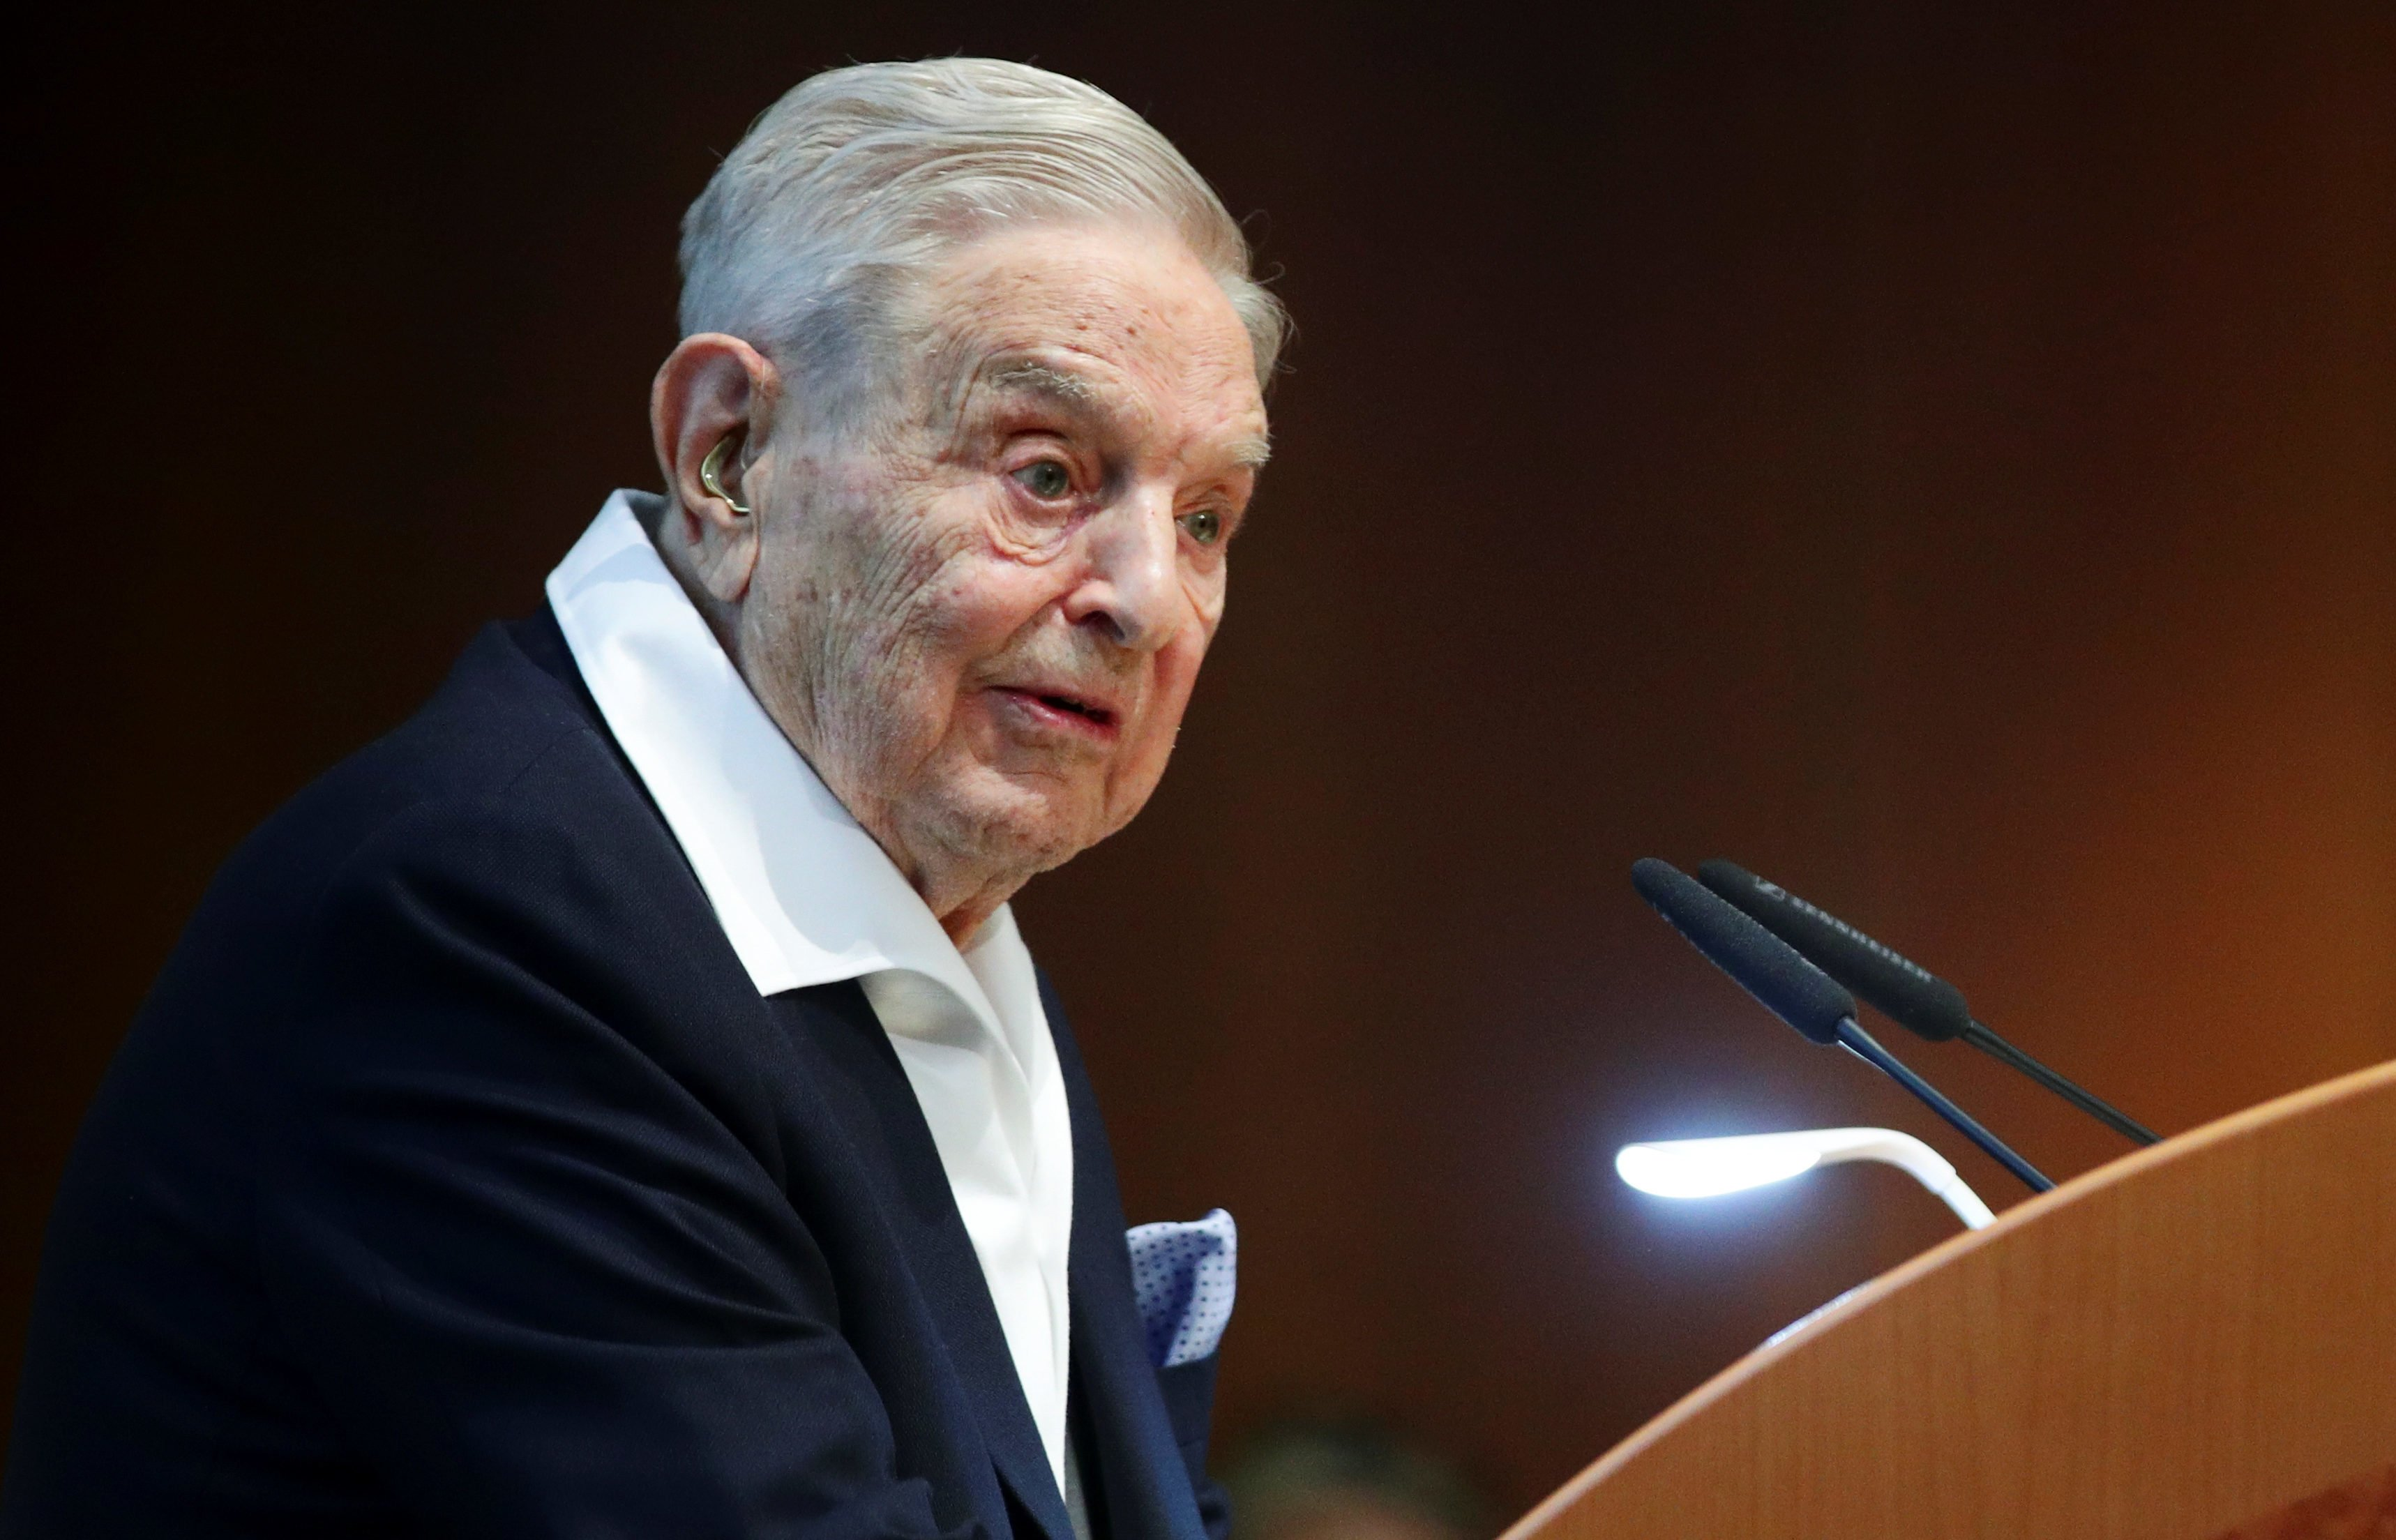 Billionaire investor George Soros speaks to the audience at the Schumpeter Award in Vienna, Austria June 21, 2019. REUTERS/Lisi Niesner - RC1C86FE78A0